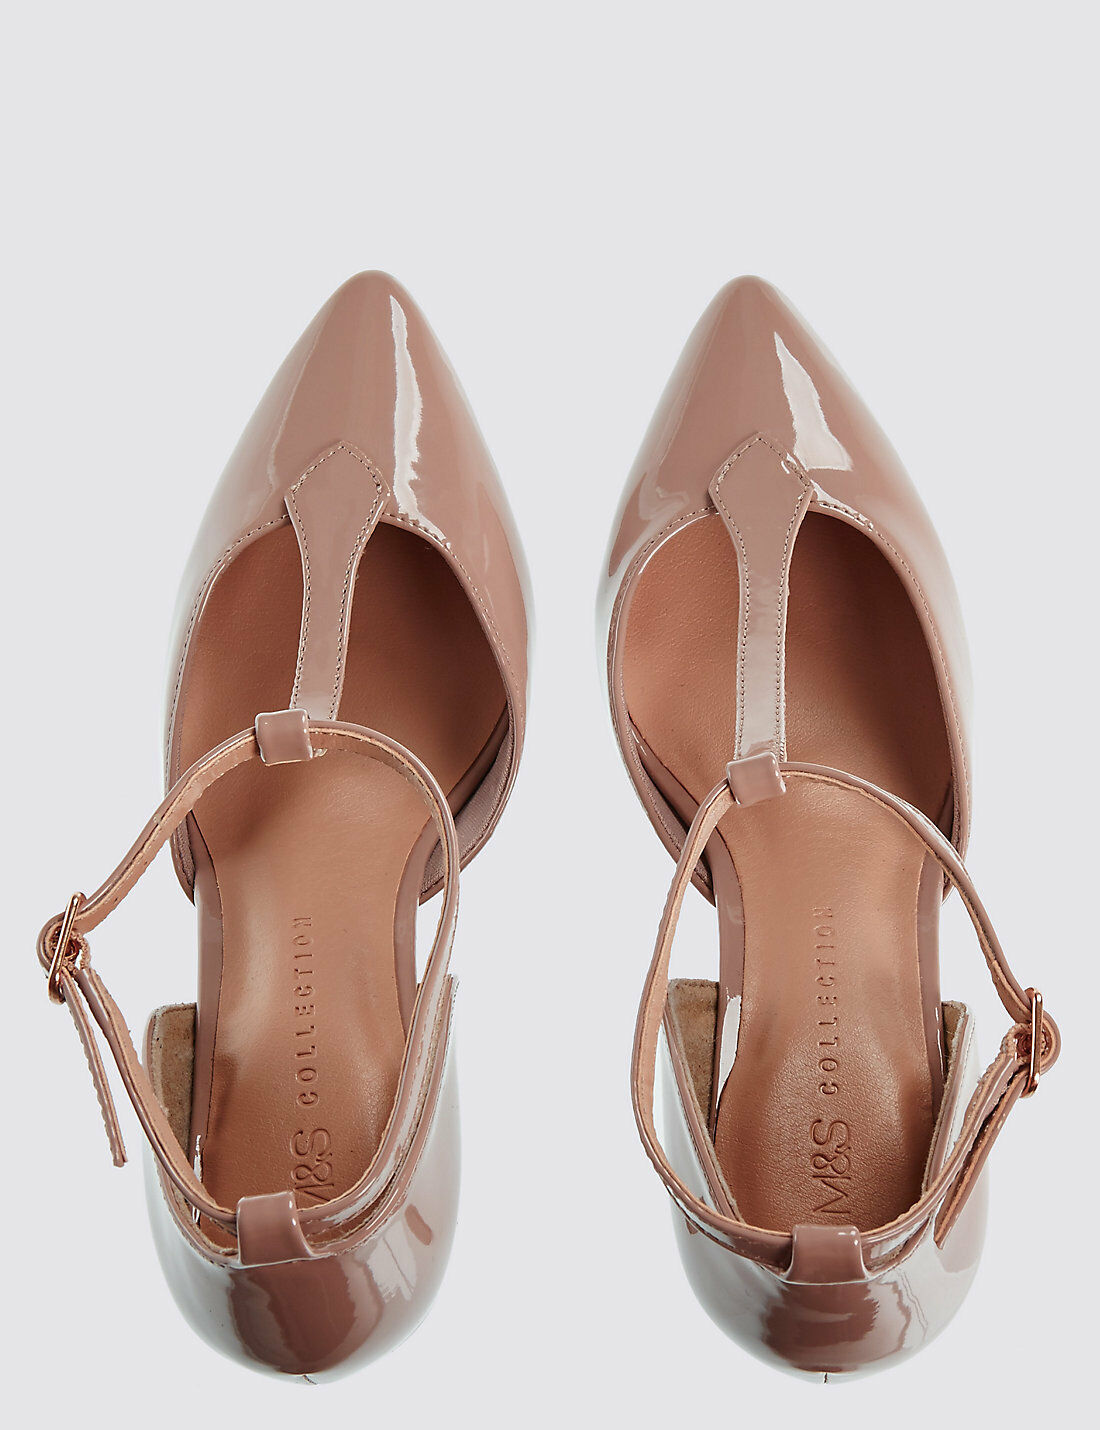 M&S  CARAMEL STILETTO COURT SHOES WITH INSOLIA FOR BEAUTIFUL WOMEN UK 7.5 & UK 8